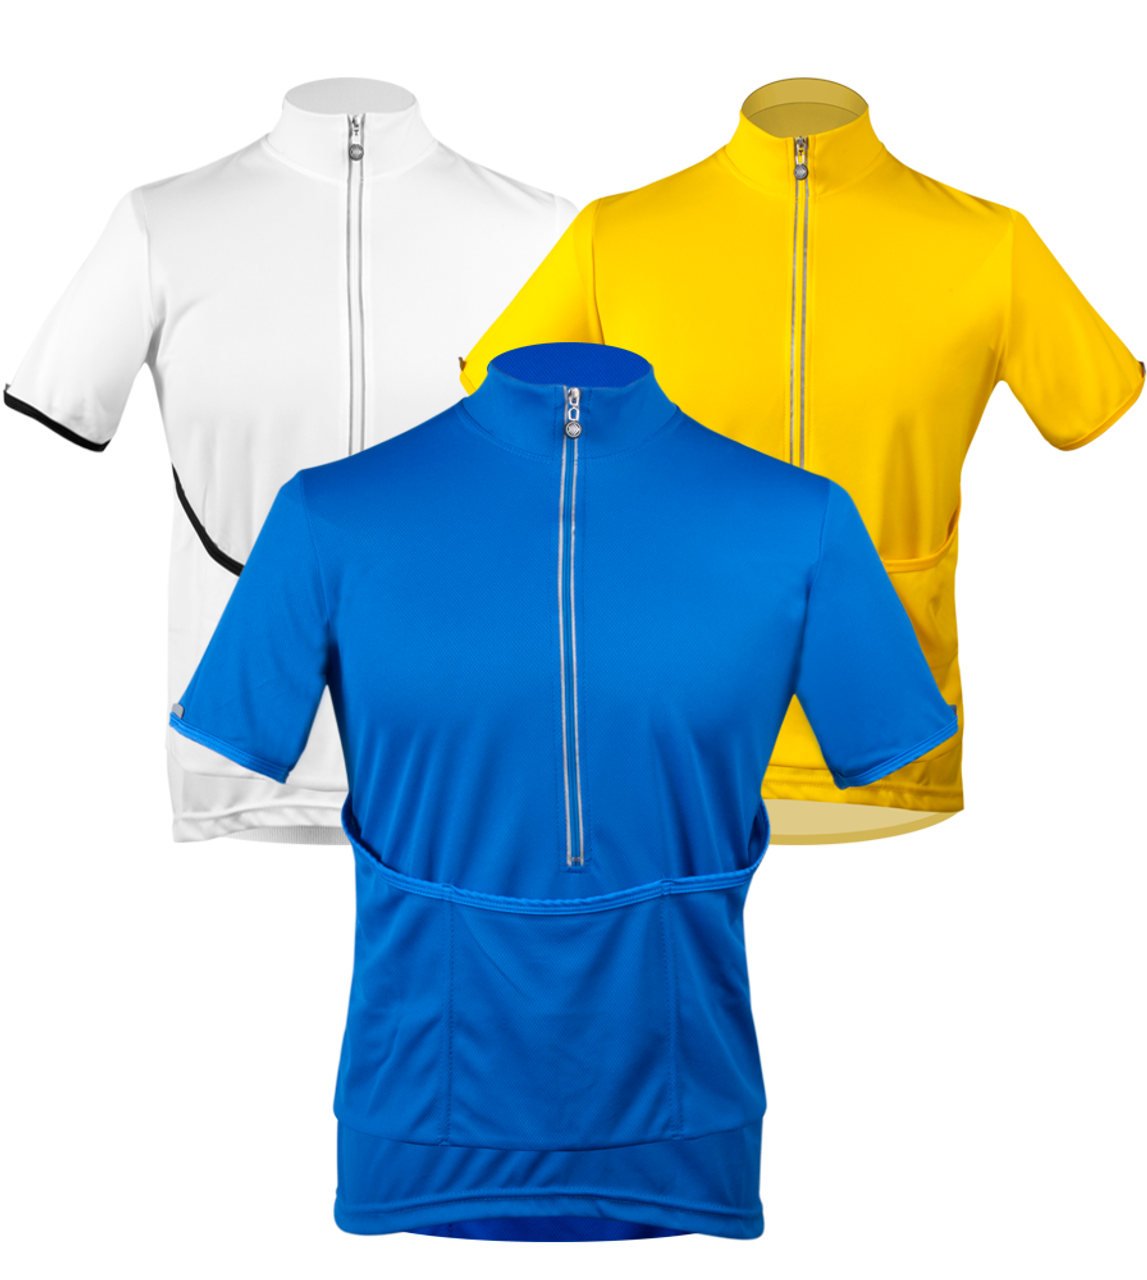 5543d4bac6157 Cycling Jerseys for Recumbents